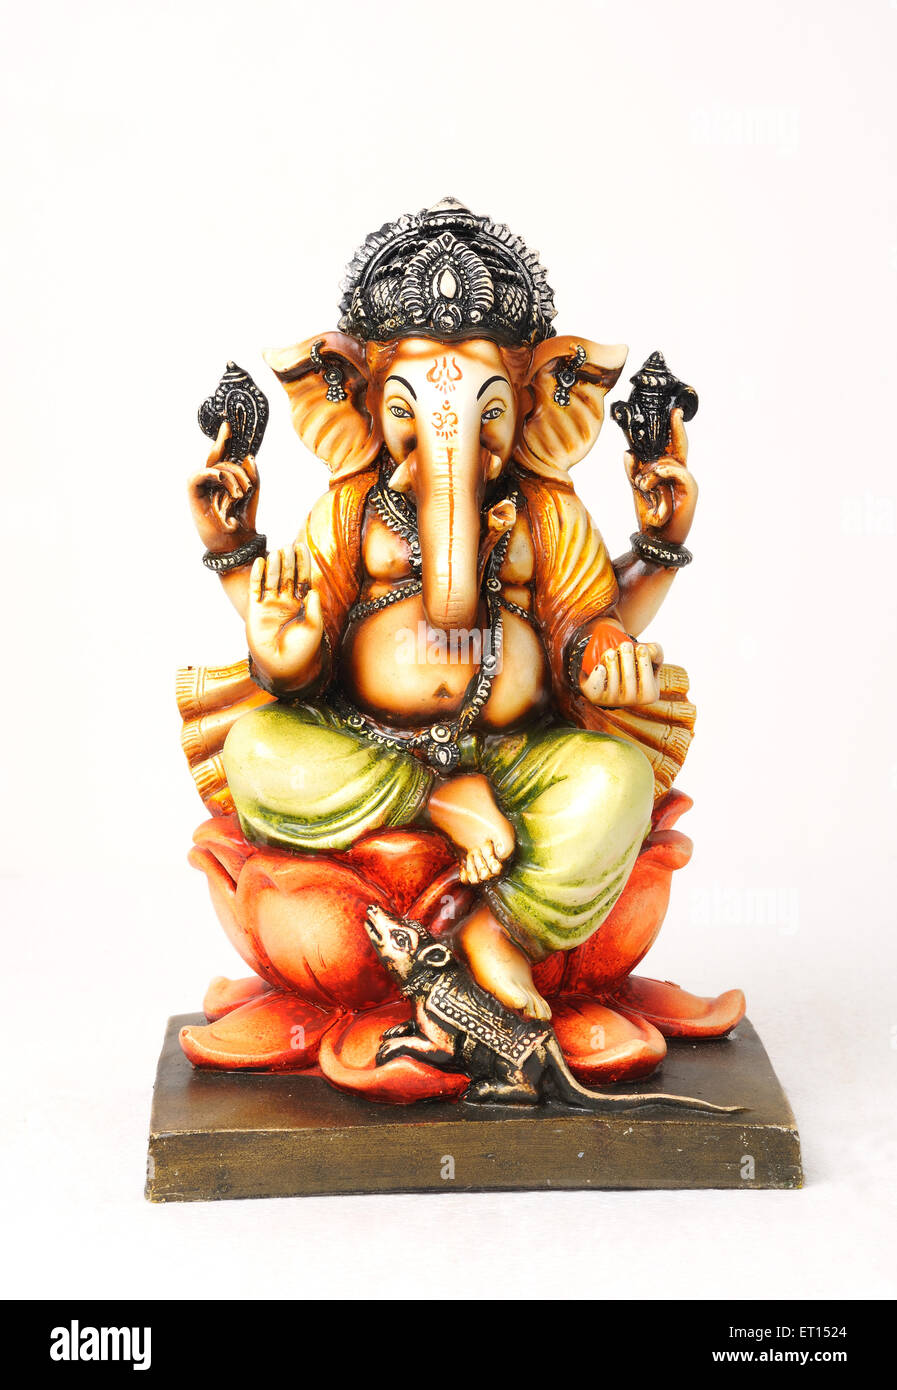 Clay statue of lord ganesh sitting on lotus with mouse - Stock Image